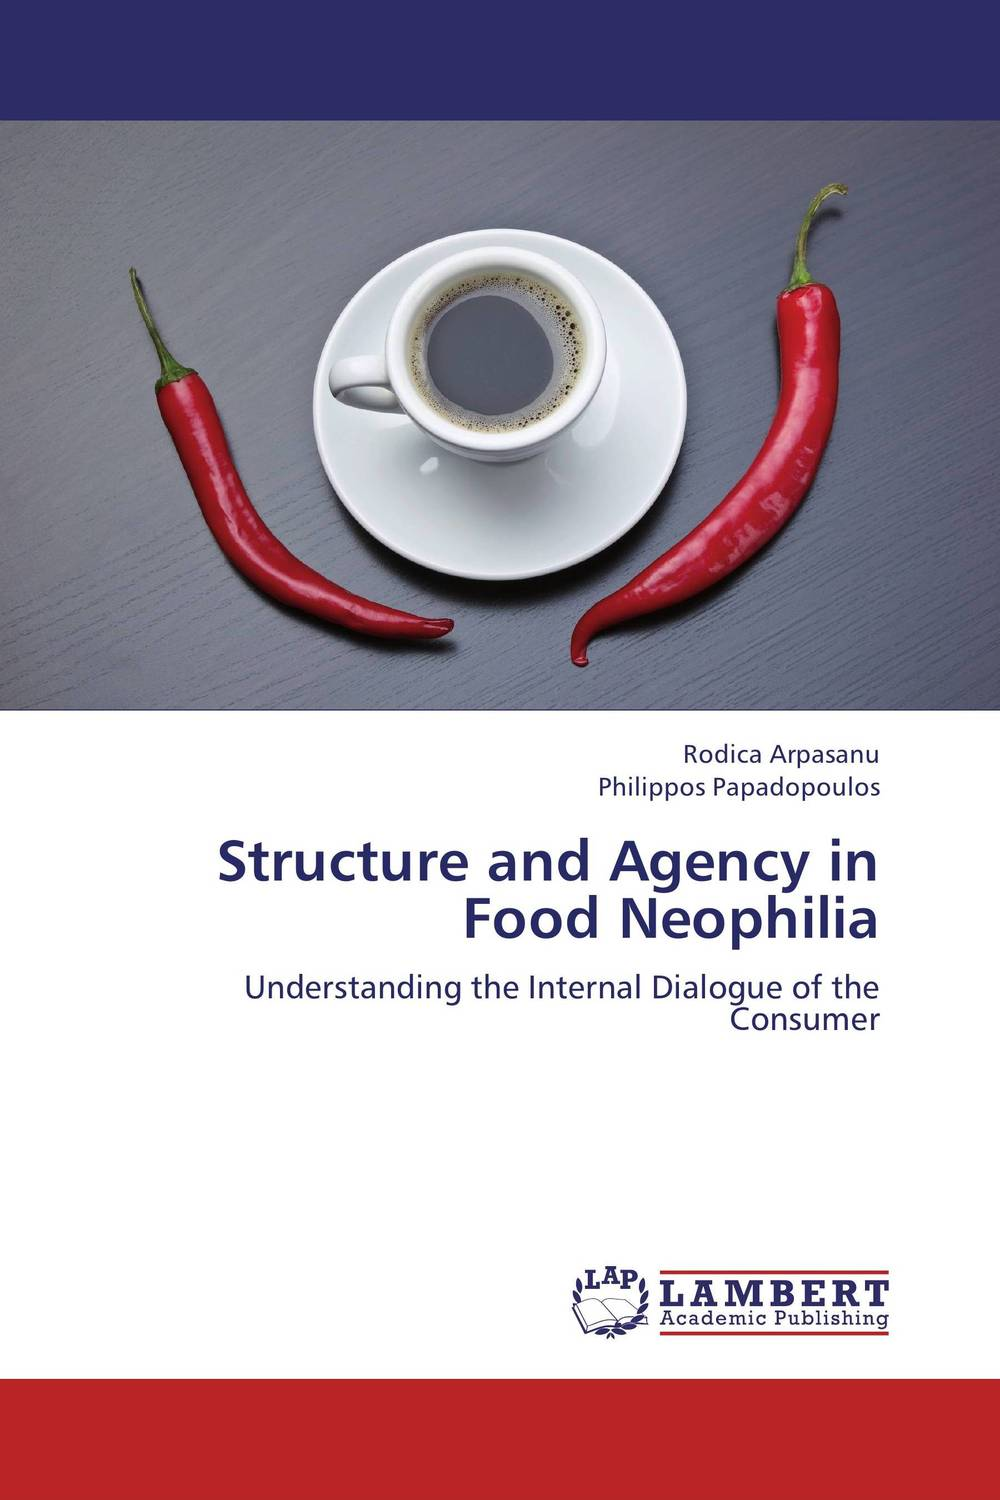 Structure and Agency in Food Neophilia